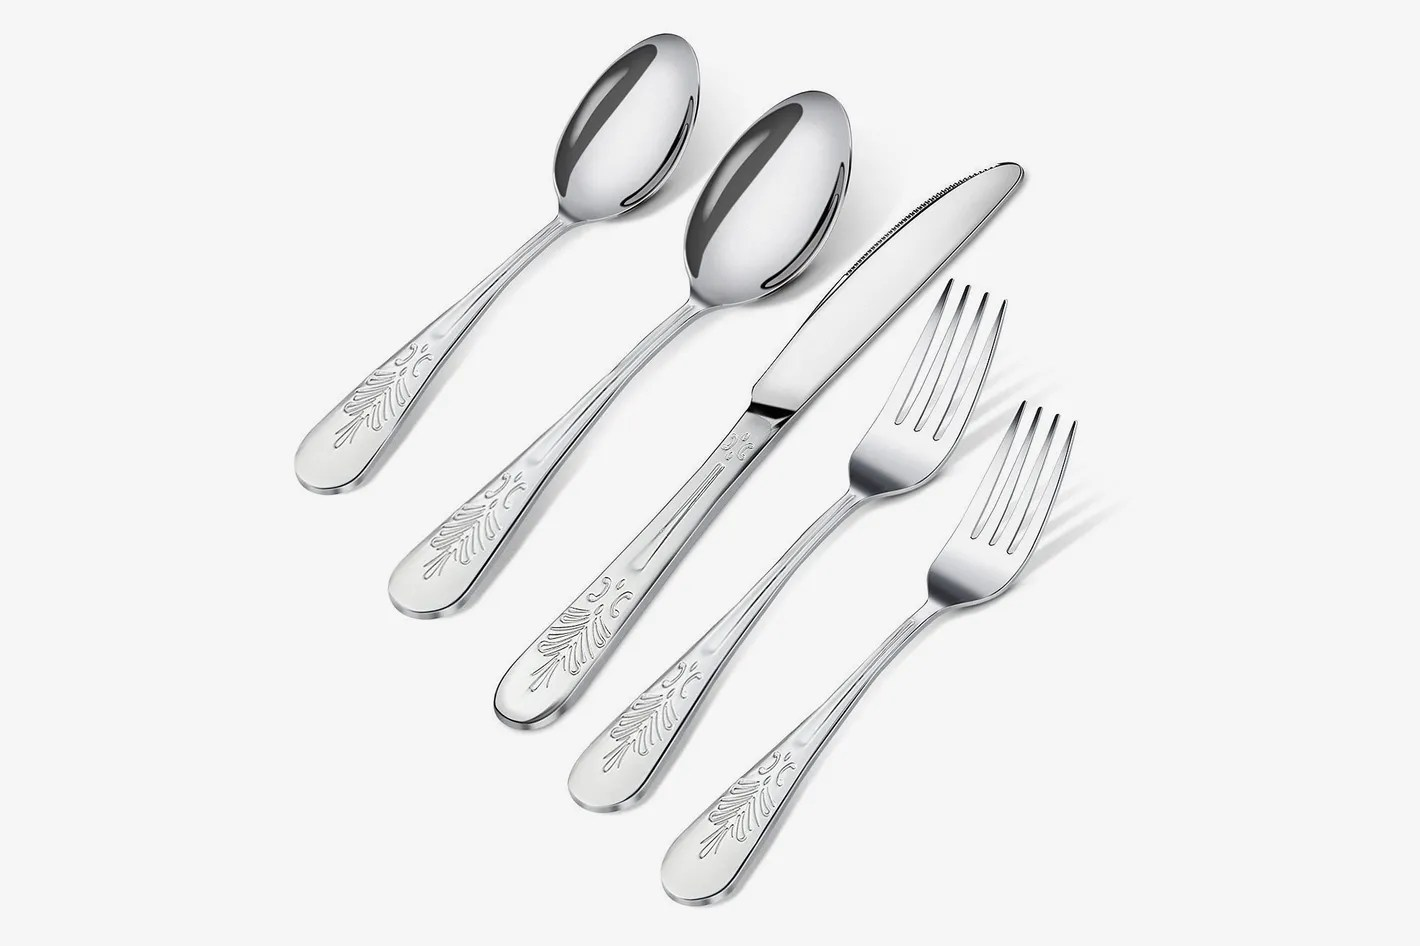 Used Flatware For Sale Utopia Kitchen 20 Piece Stainless Steel Flatware Set